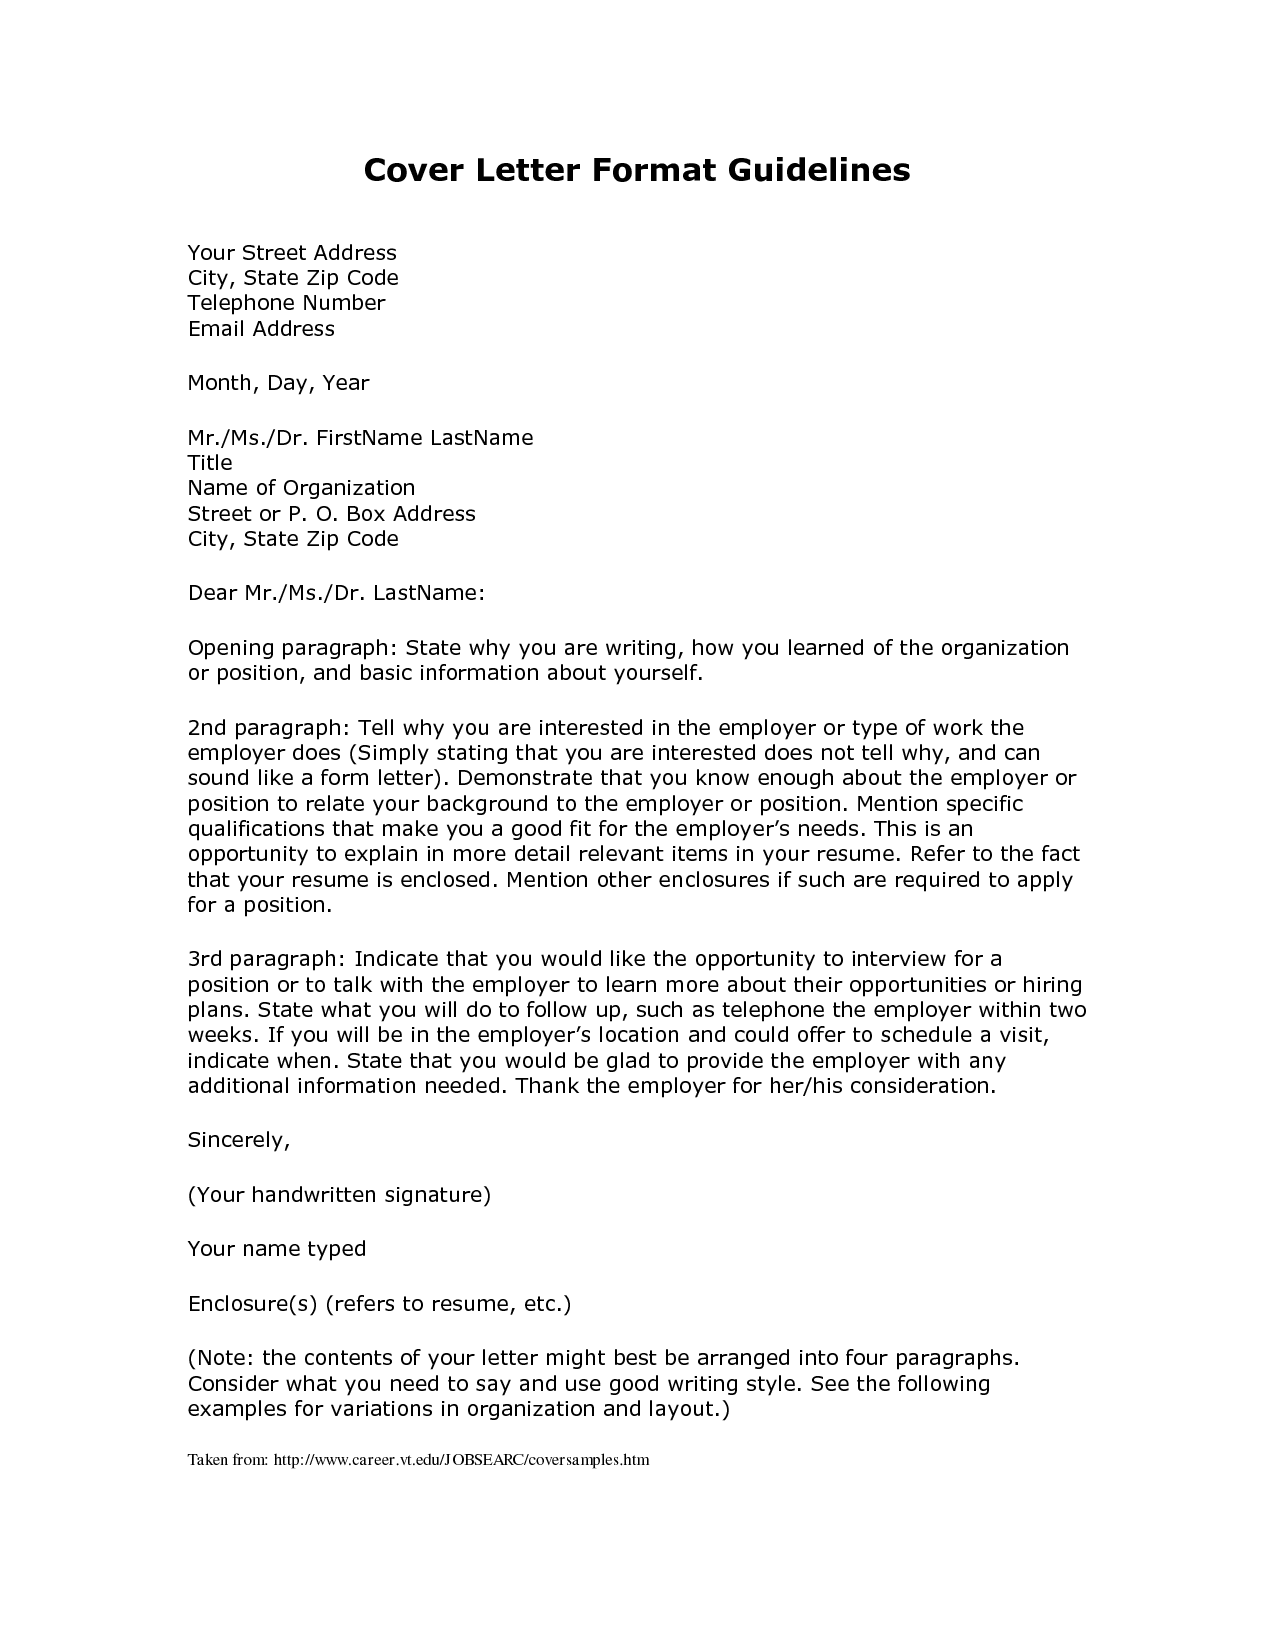 Cover Letter Template Address CoverLetterTemplate